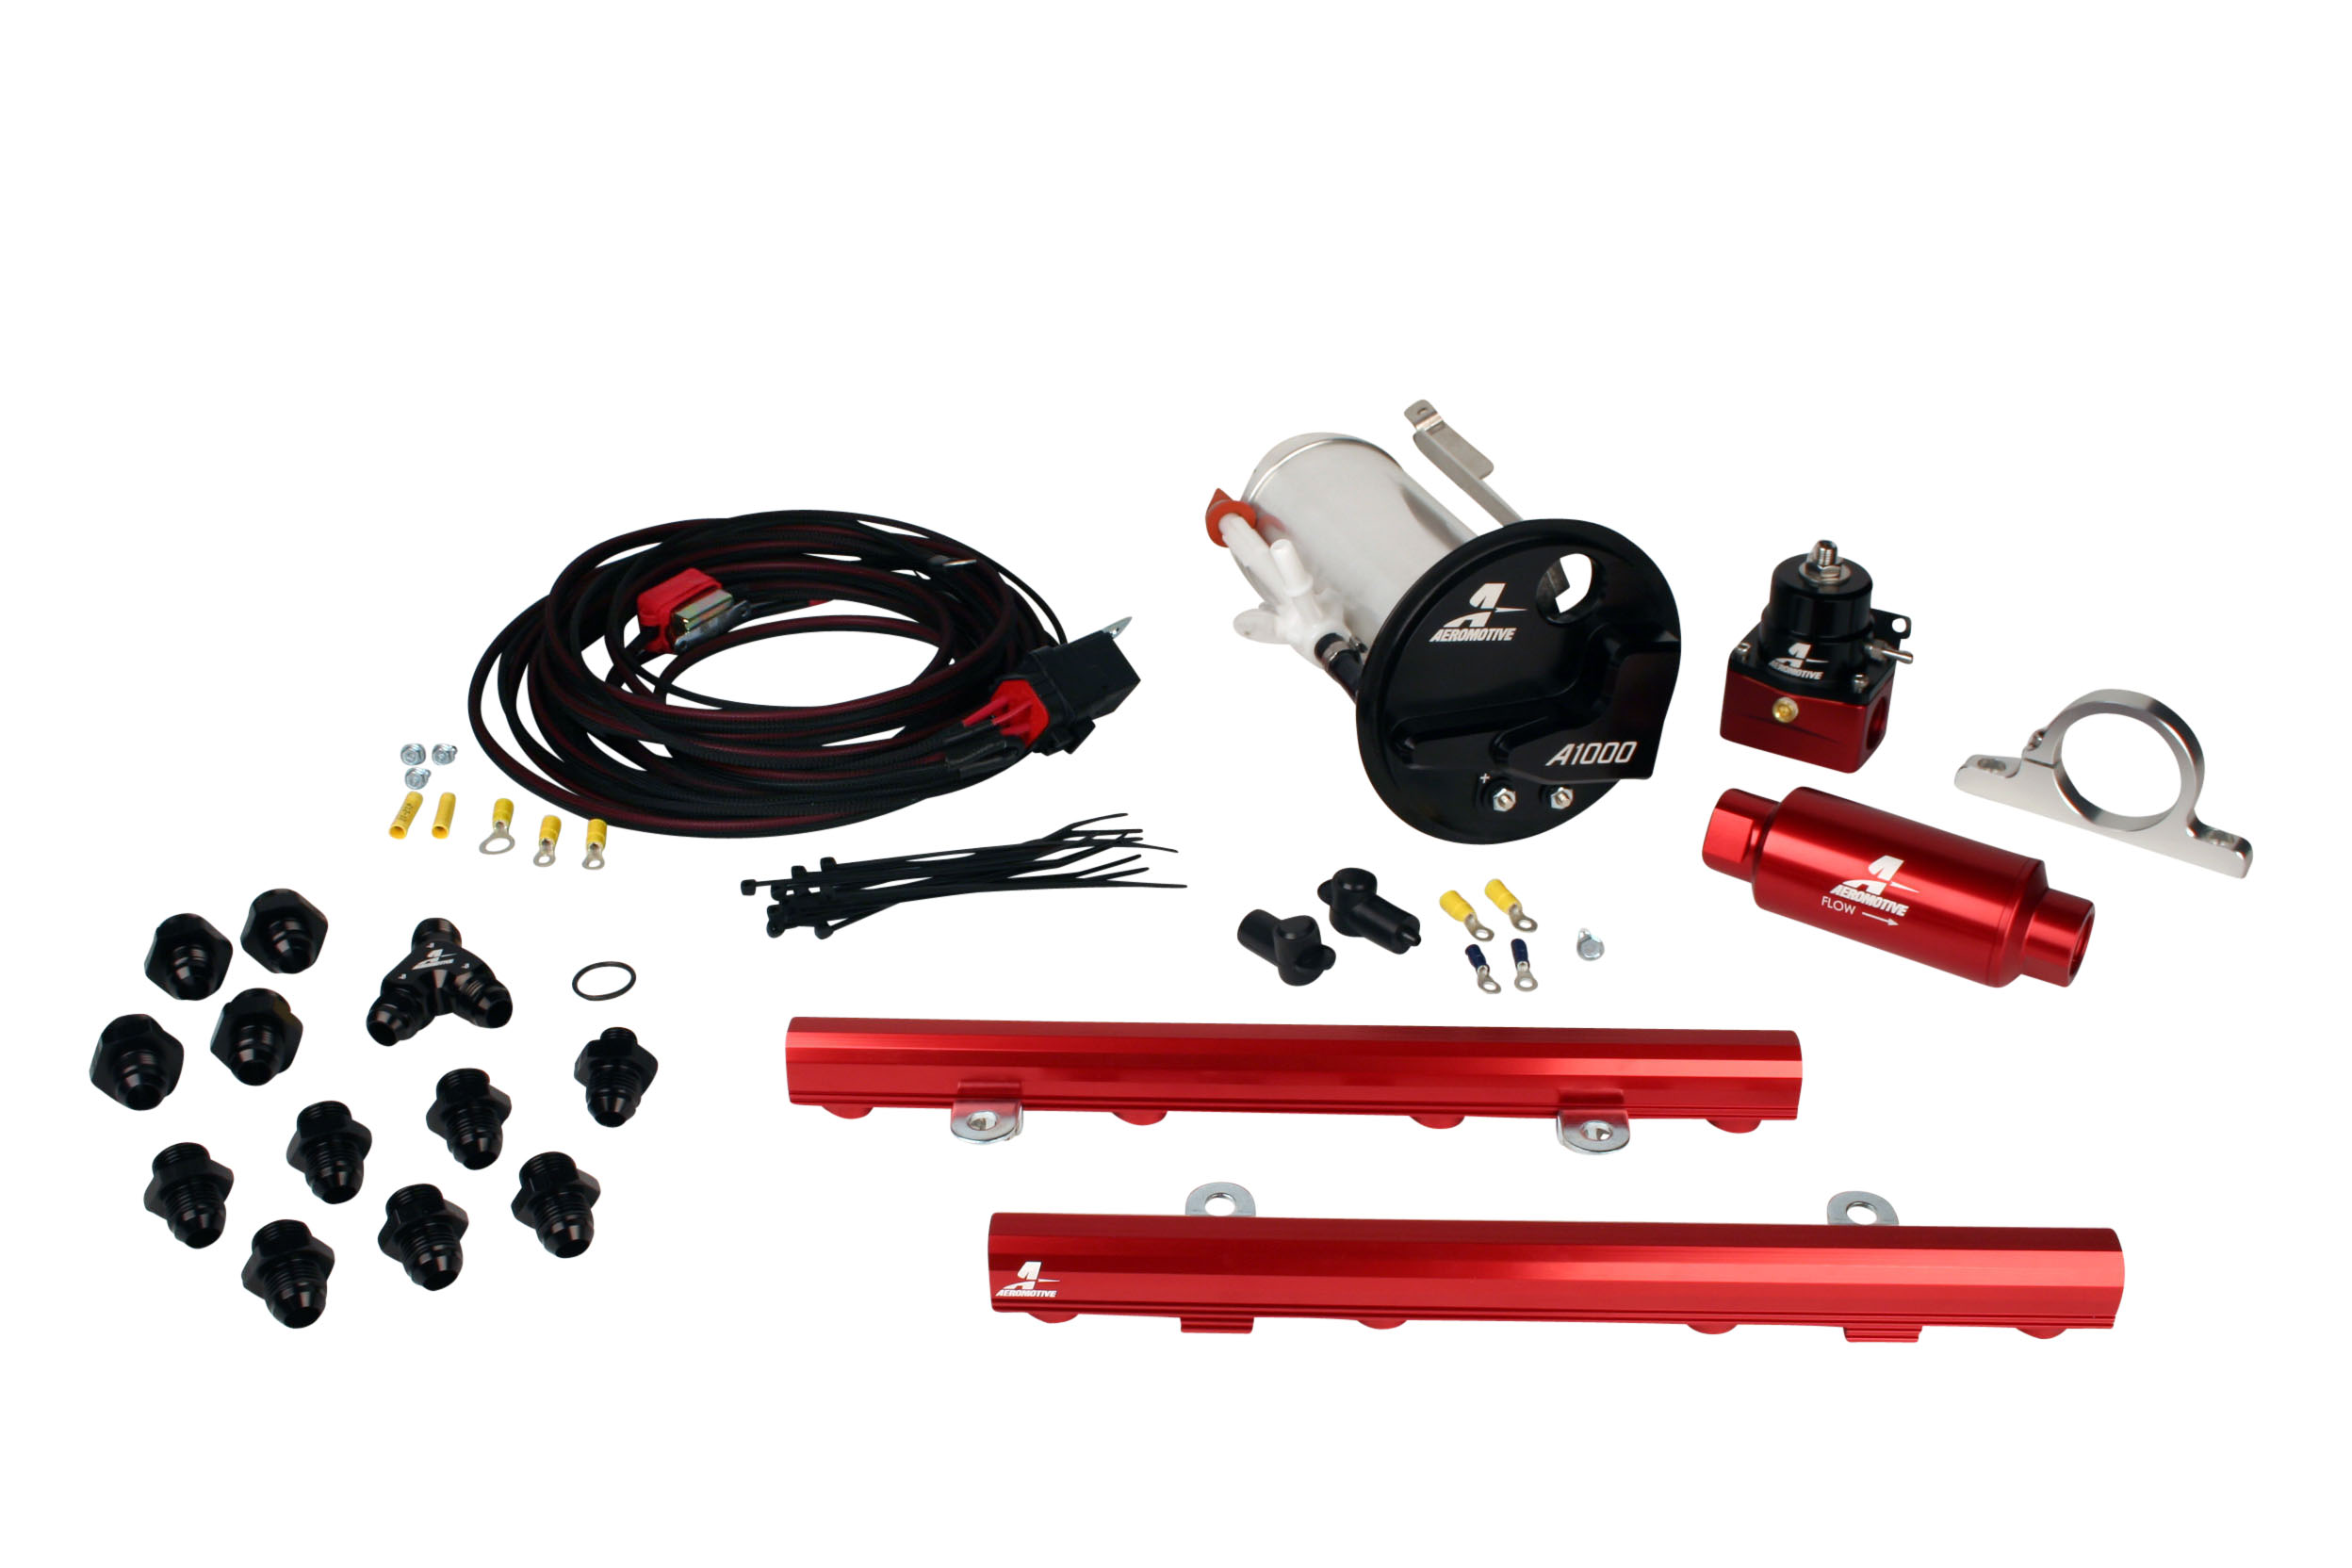 2007-2012 Ford Mustang Shelby GT500 Aeromotive Stealth A1000 Race Fuel System w/5.0L 4-V Fuel Rails